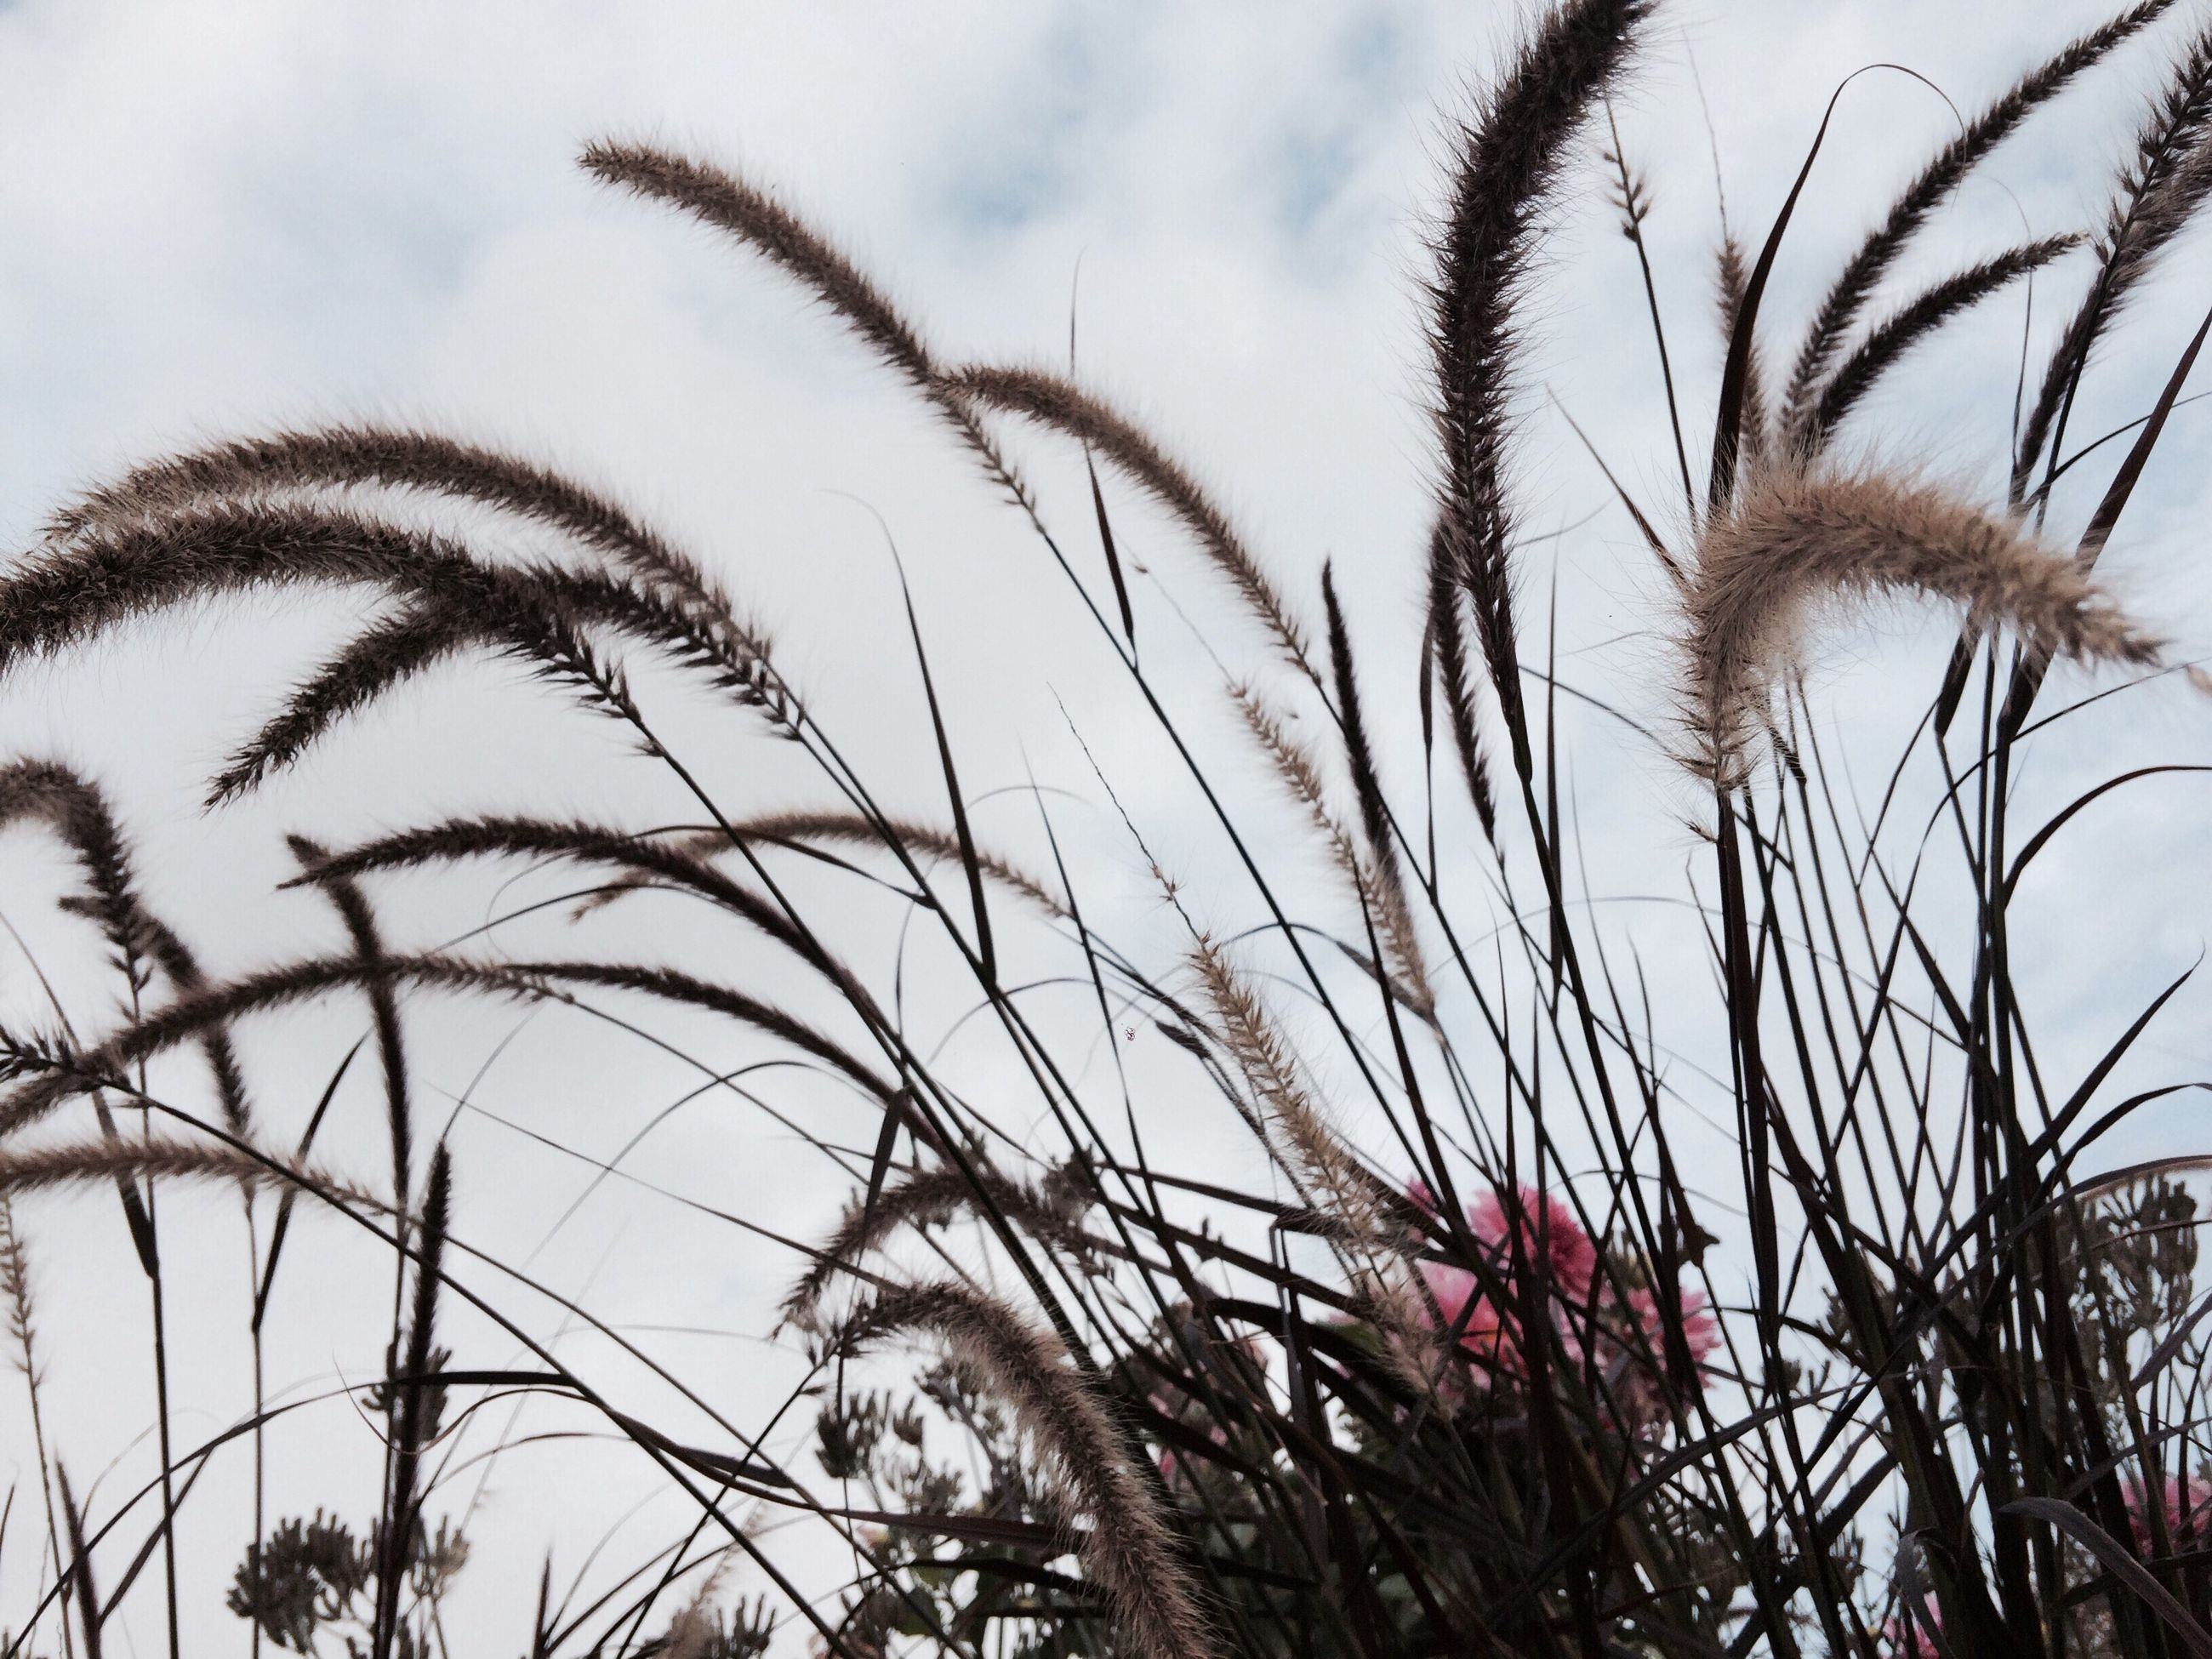 sky, growth, nature, low angle view, no people, flower, cloud - sky, tree, outdoors, plant, day, close-up, beauty in nature